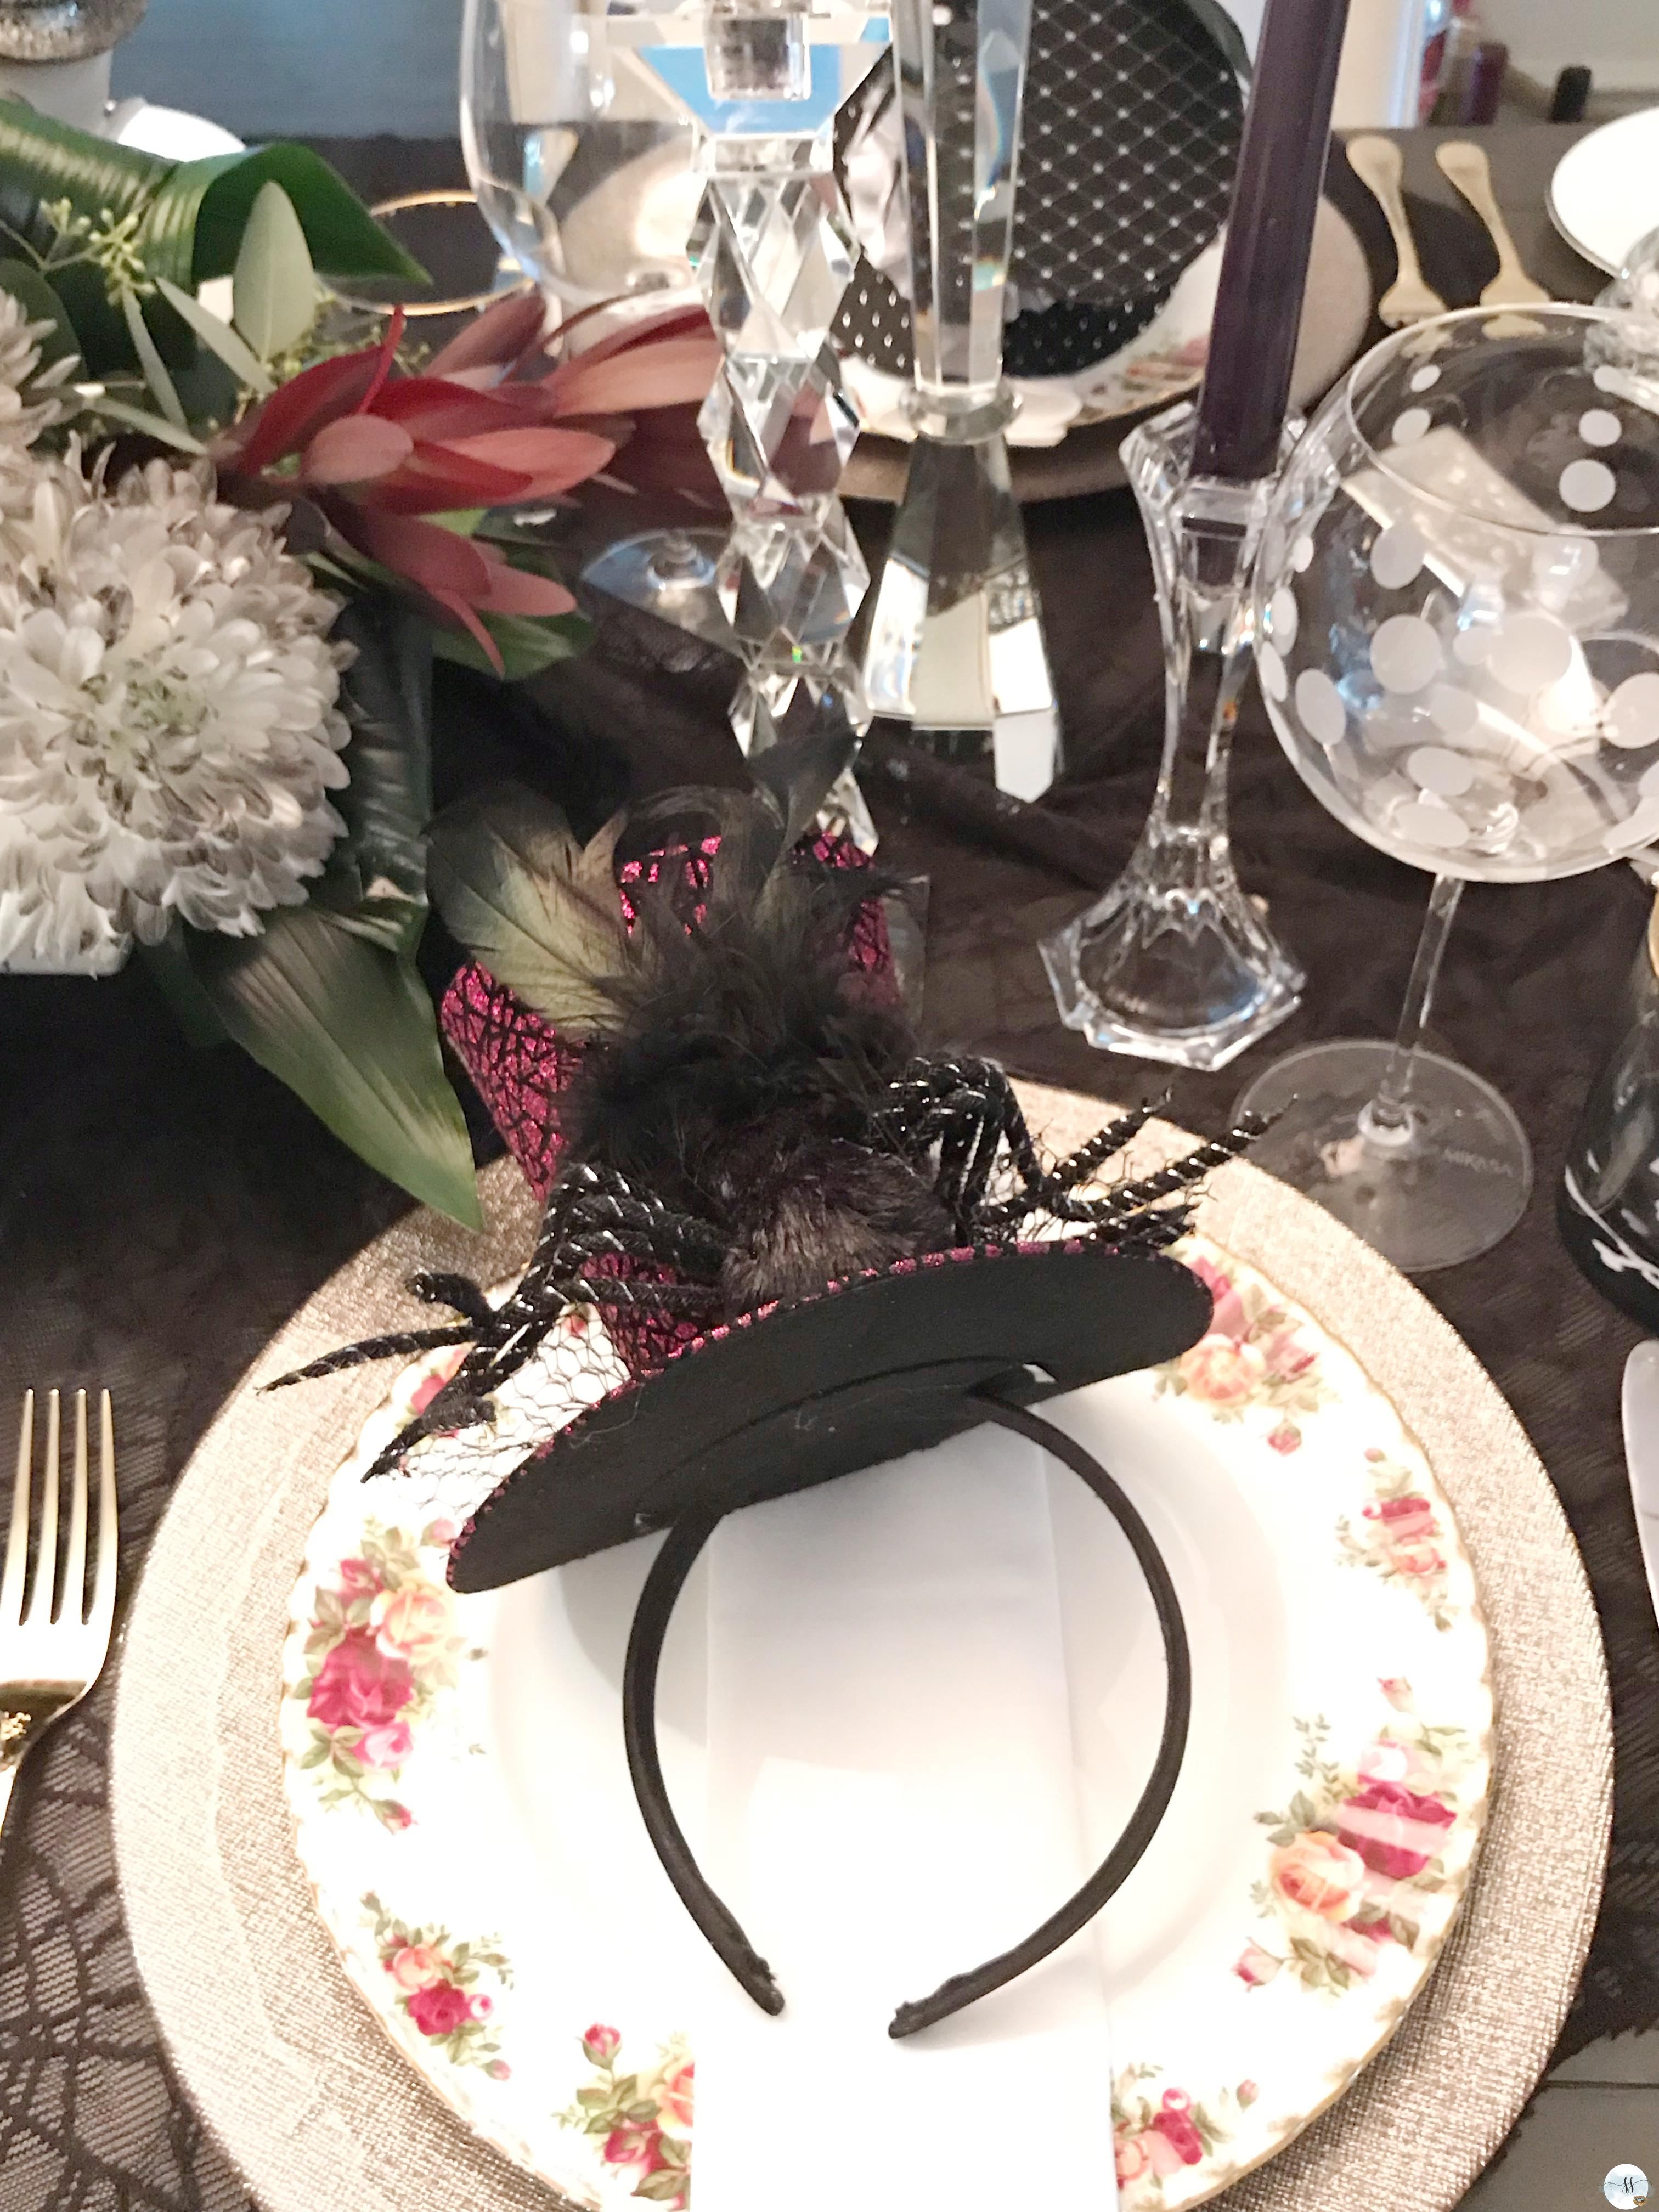 This years Halloween is a gothic table setting